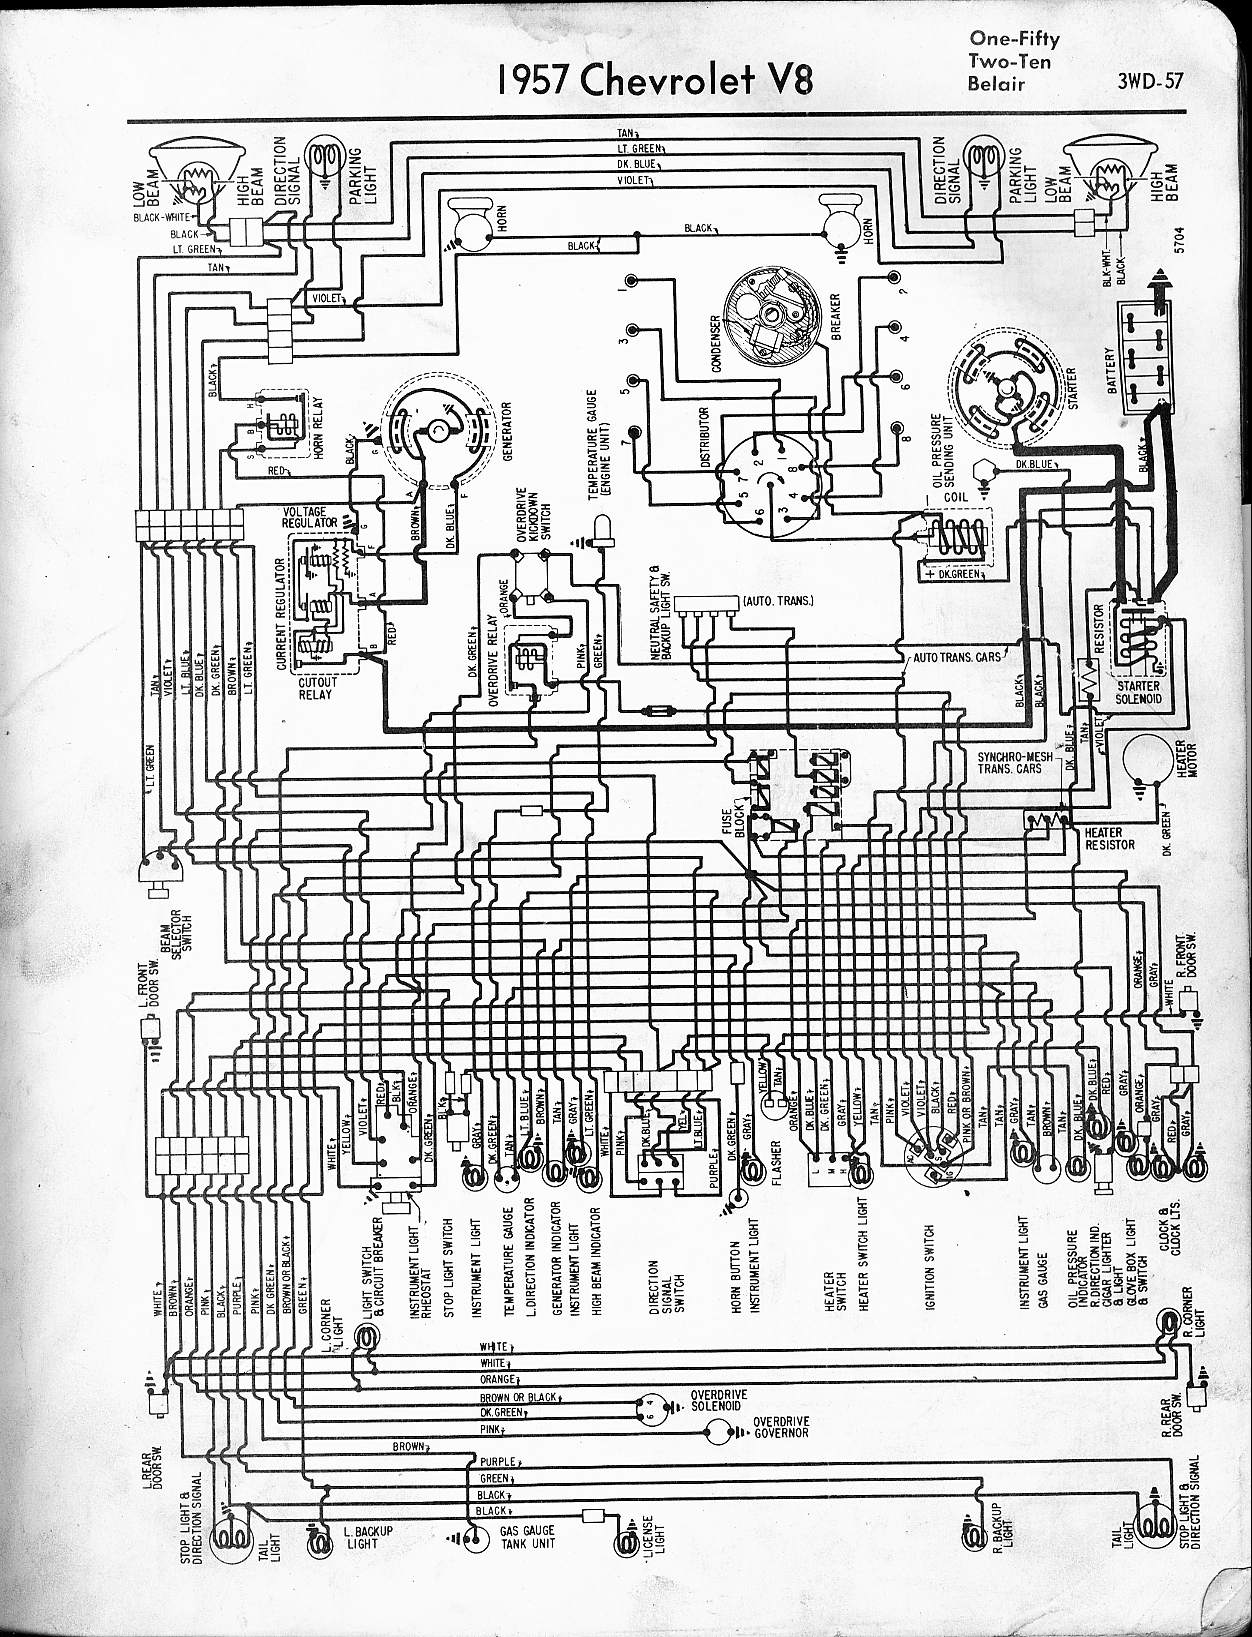 57 65 chevy wiring diagrams 57 Chevy Generator Wire 57 chevy wiring diagram 1950 Chevy Wiring Diagram 57 chevy wiring diagram 1959 Chevy Wiring Diagram